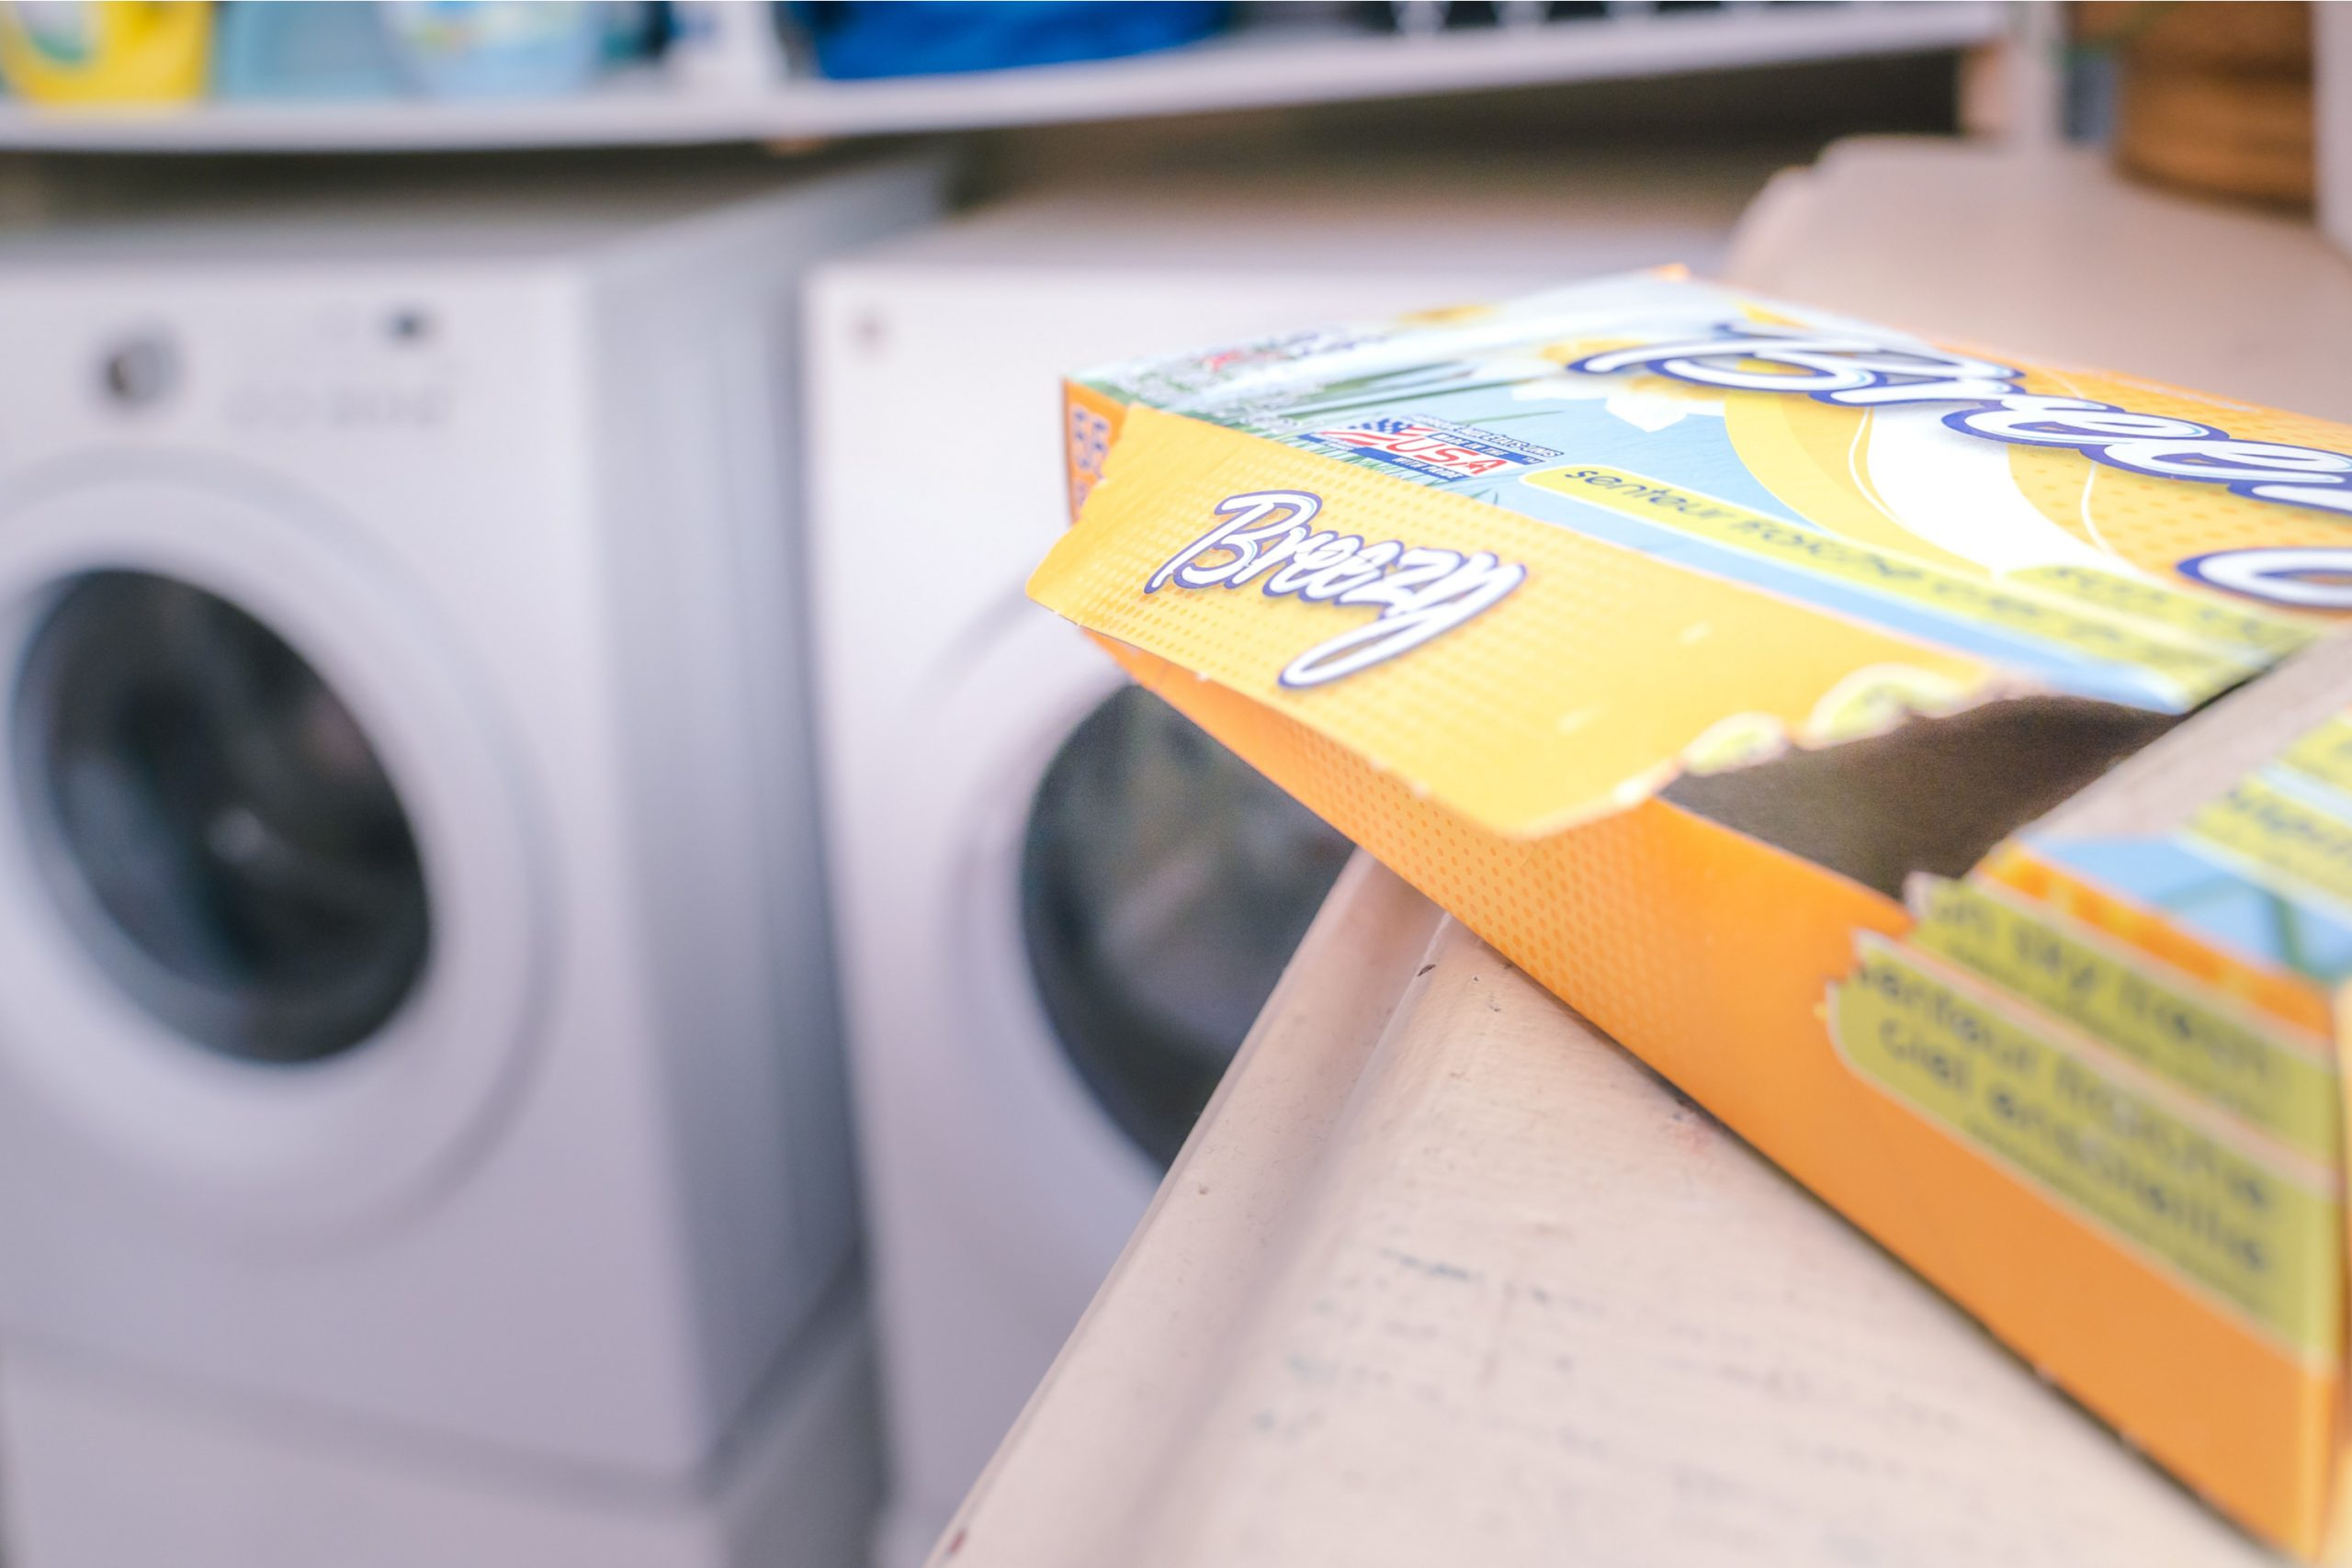 I've been using dryer sheets, in my dryer, for as long as I can remember. But dryer sheets are great for more than just laundry. Learn all of the amazing things you can clean up using dryer sheets! Here is a list of ten of my favorite ways to use dryer sheets throughout the house.